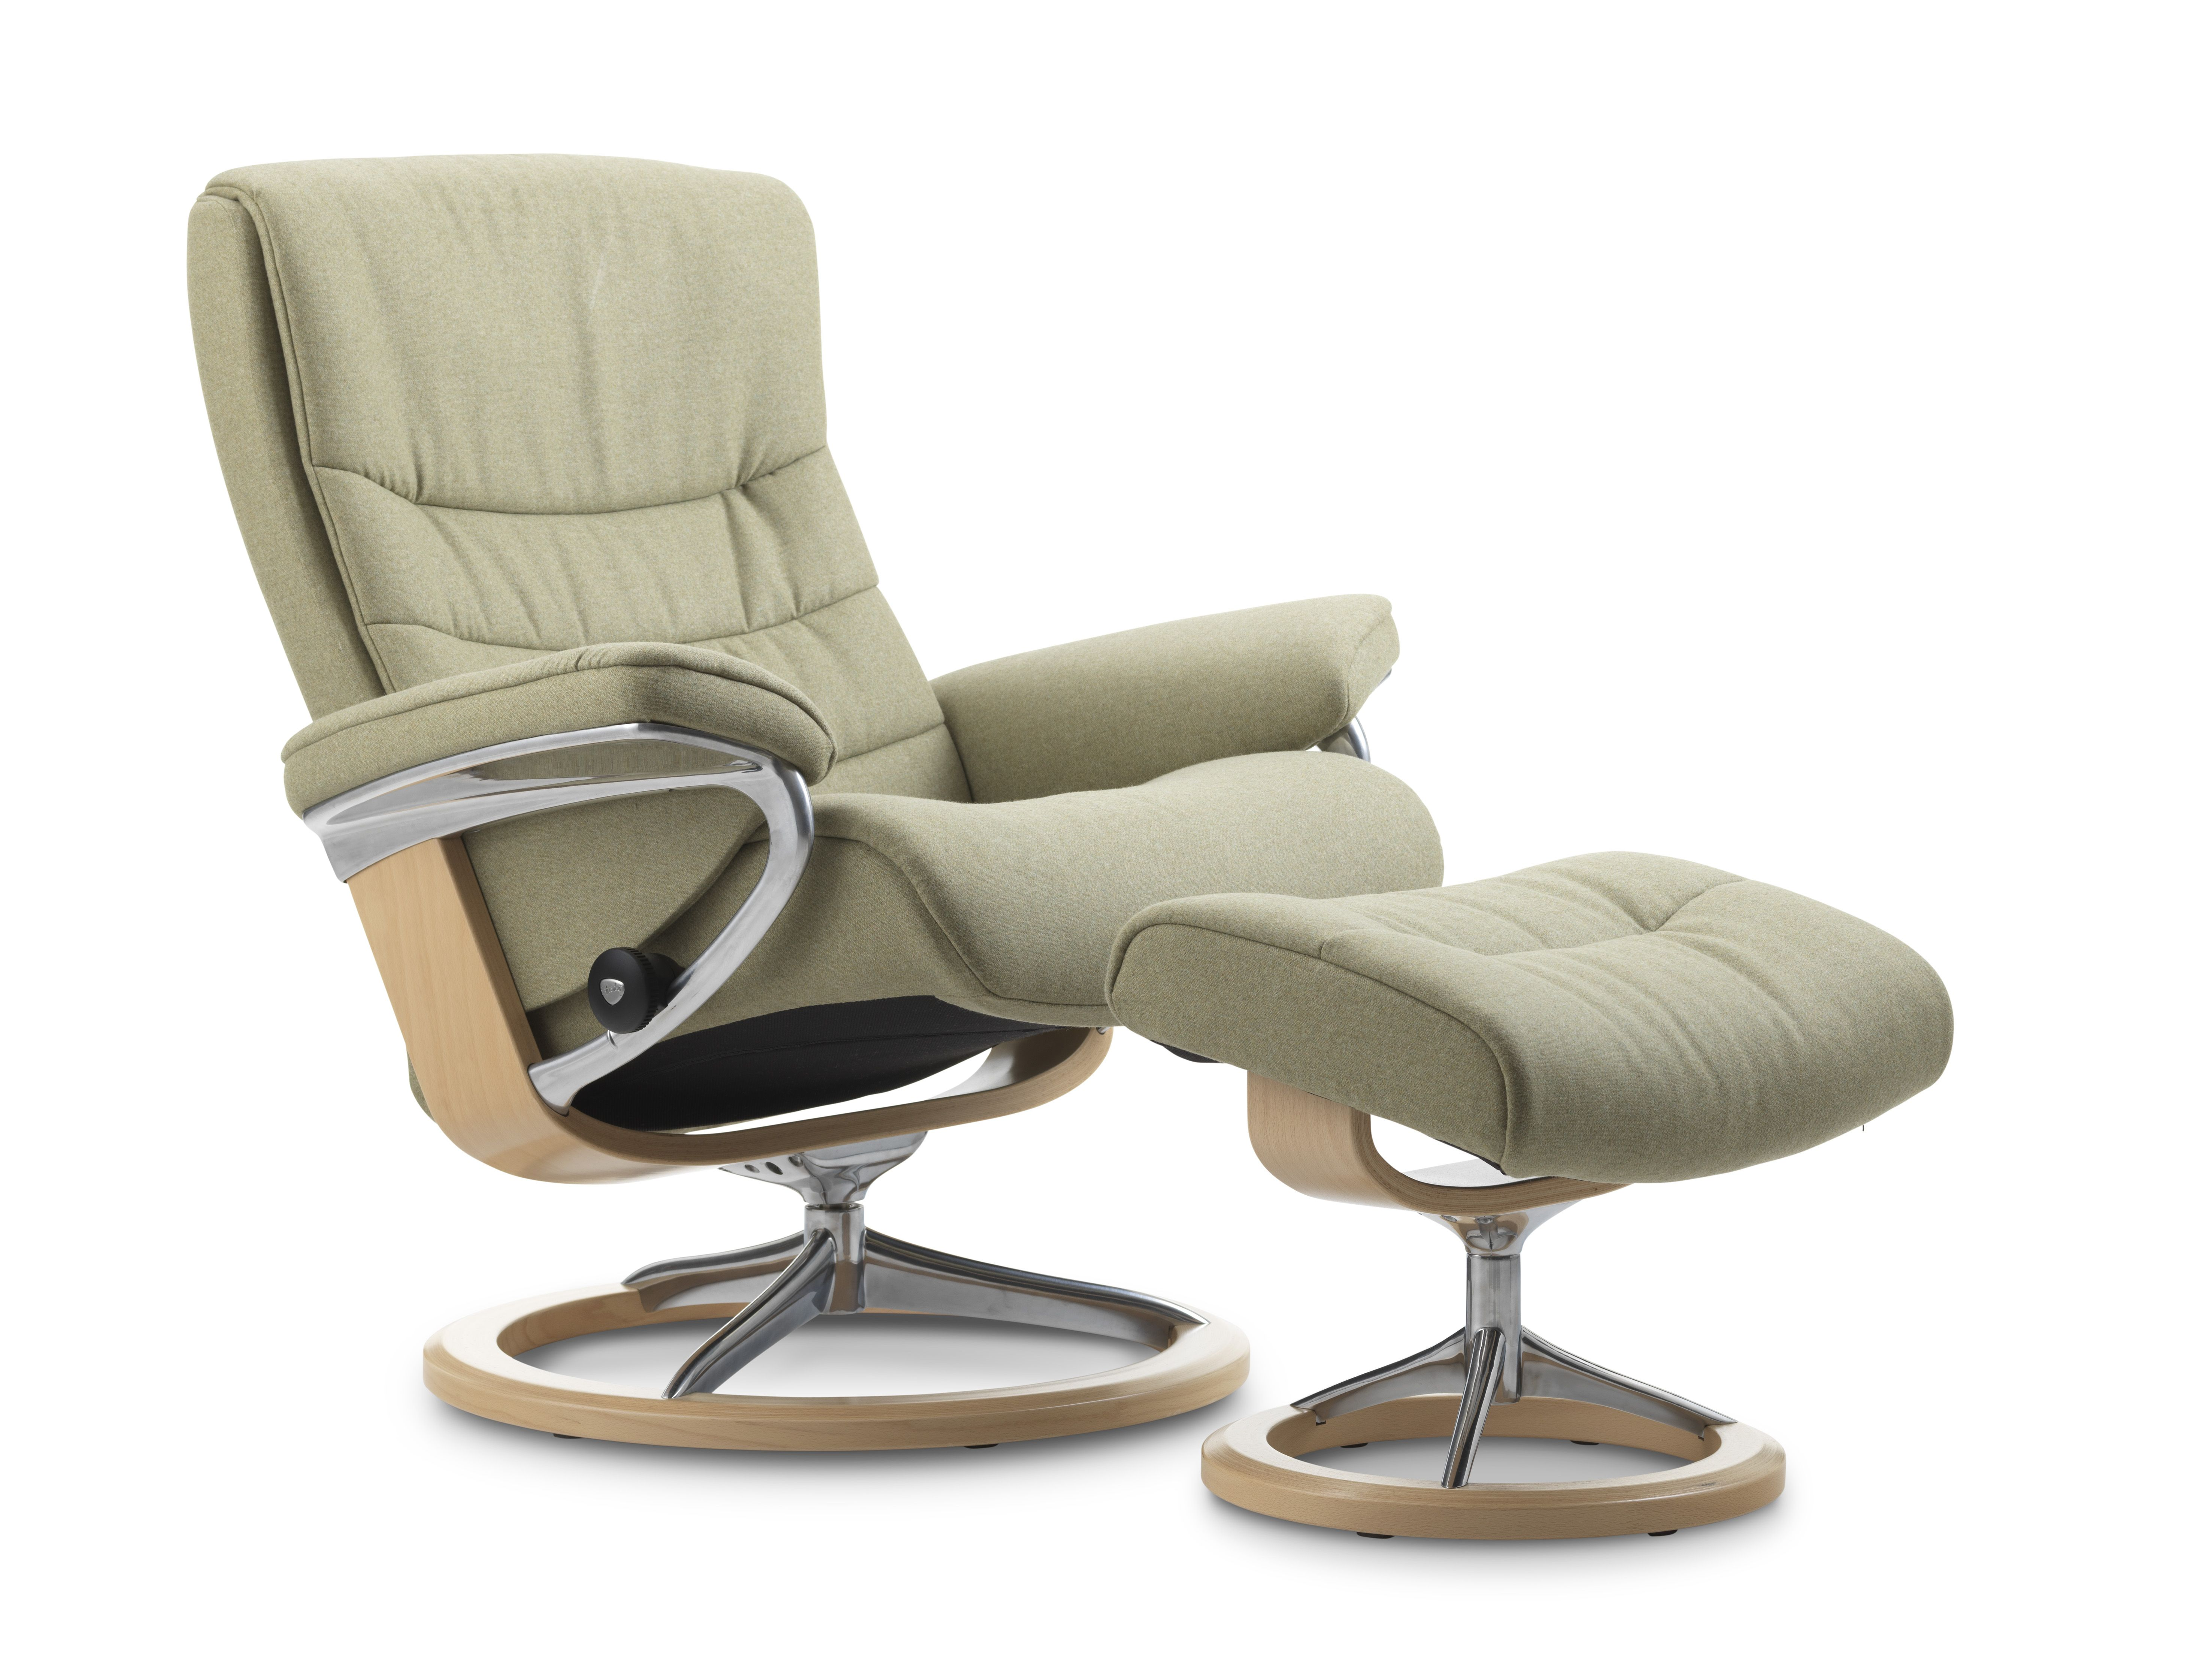 Stressless Sessel Stoff Stressless Nordic Relaxsessel Inkl Hocker In Der